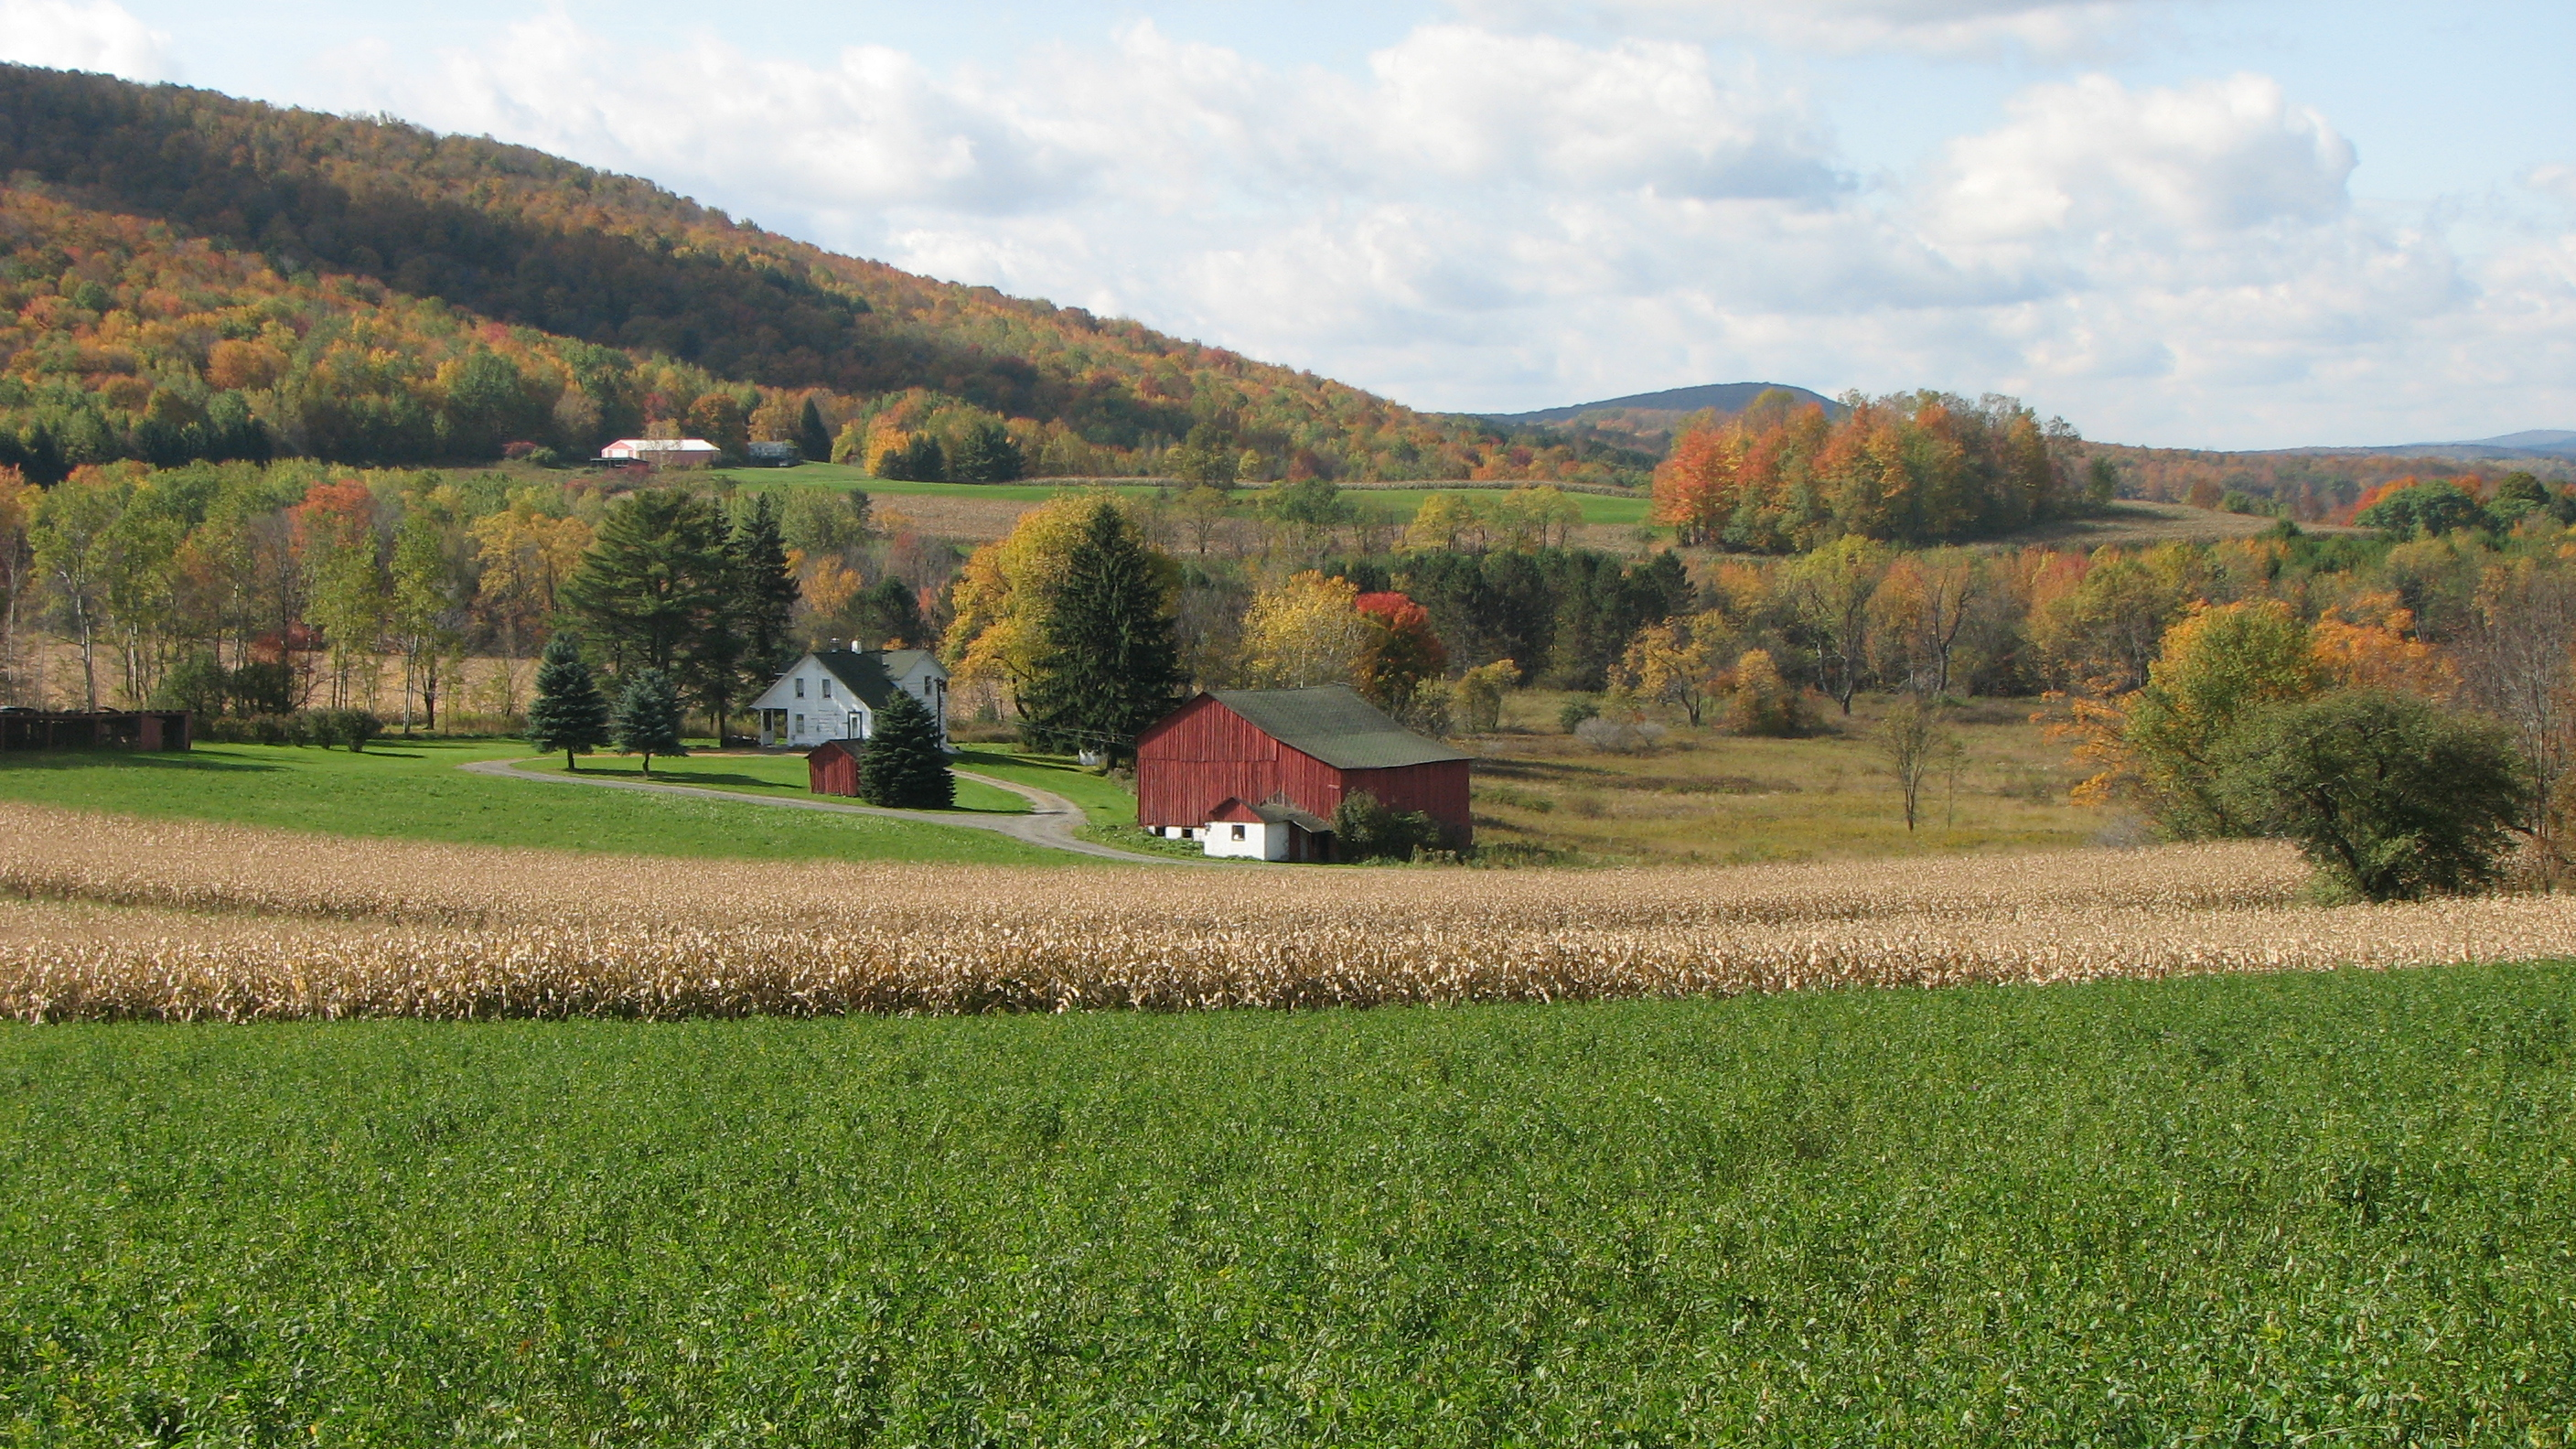 Free Country Fall Wallpaper File North Central Pennsylvania Farm Jpg Wikimedia Commons